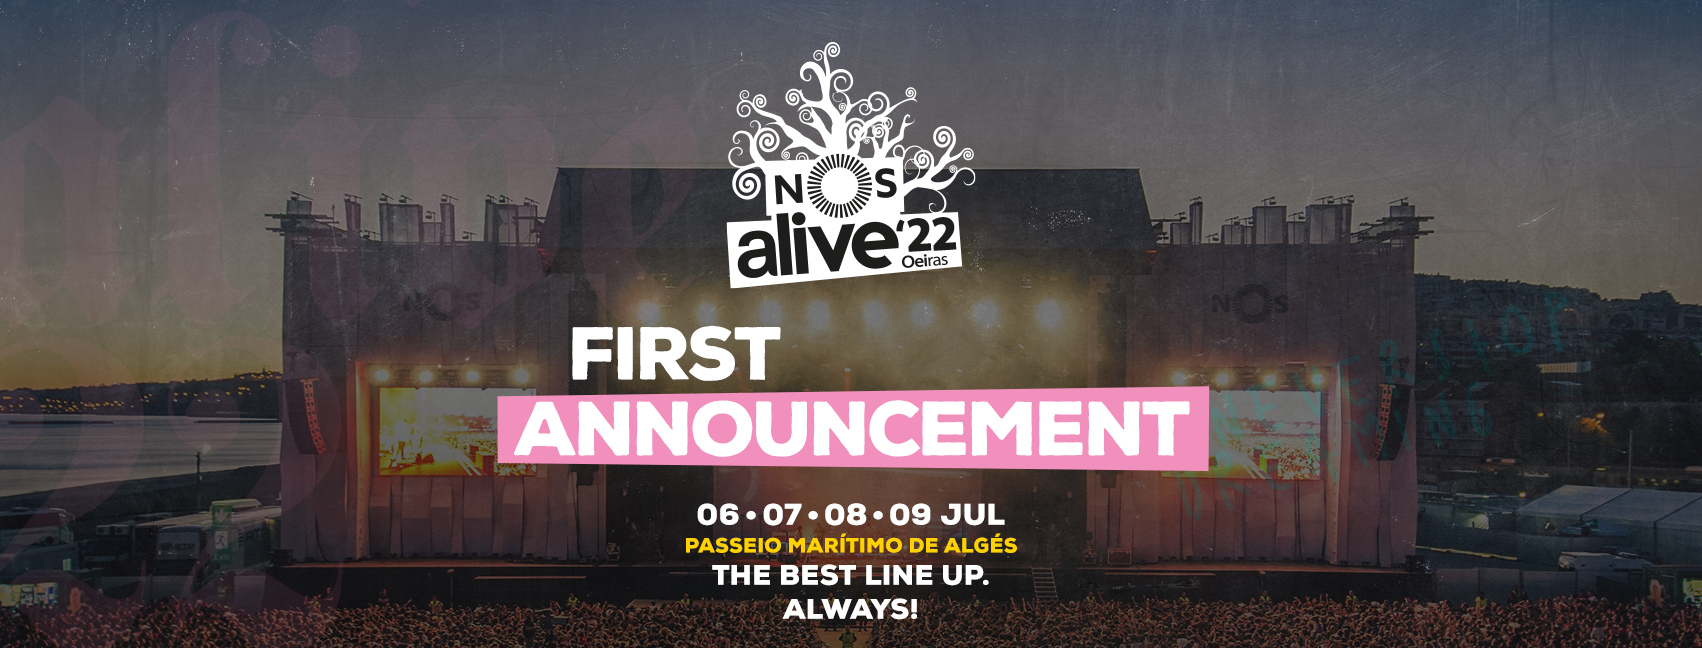 Nos Alive: First announcement for Nos Alive 2022 1